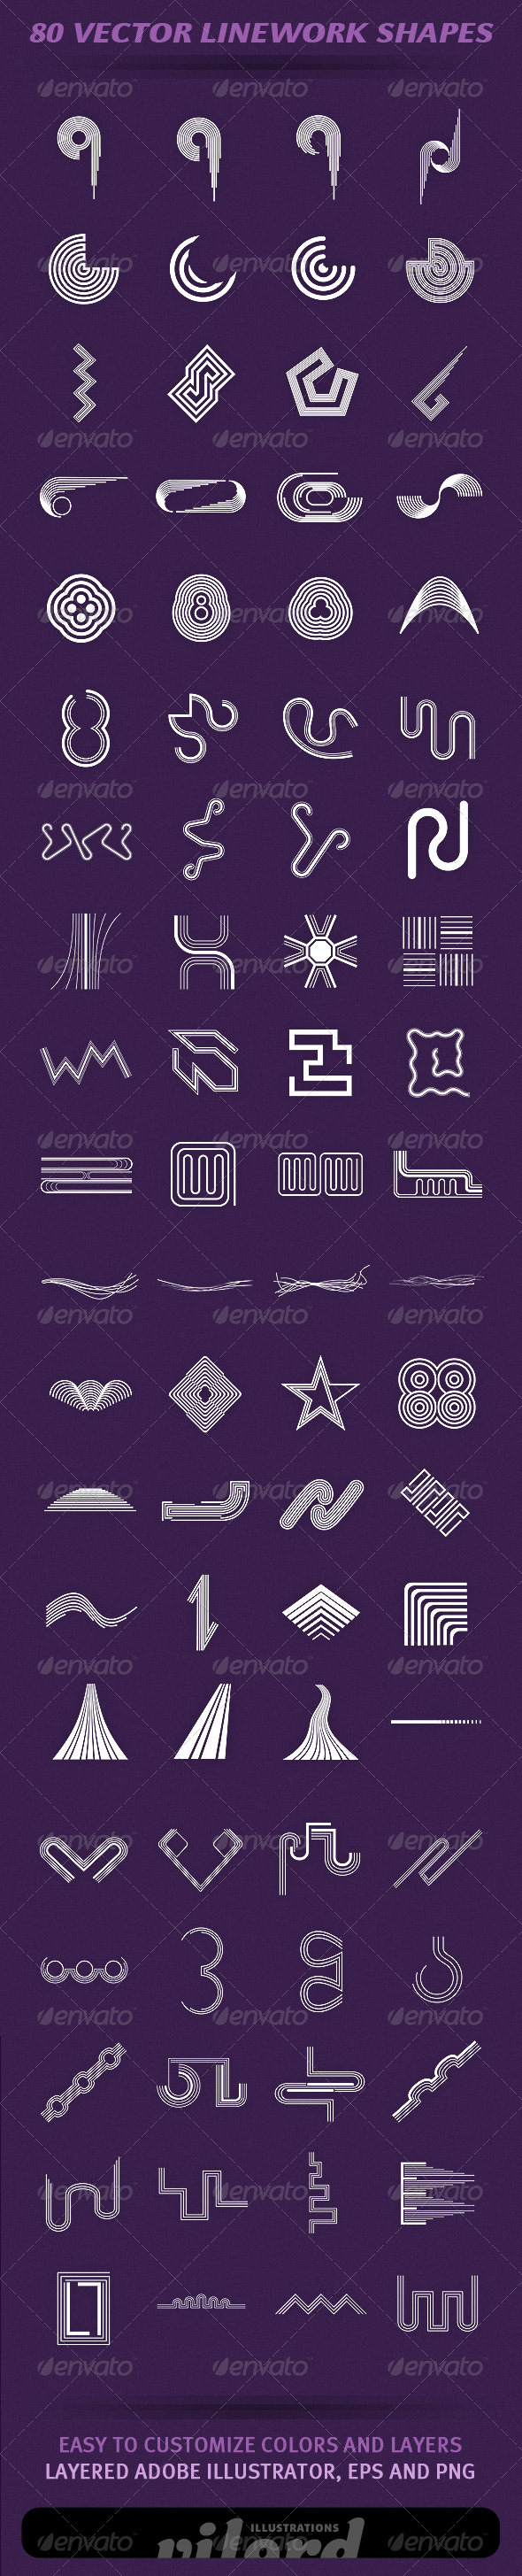 80 Vector Linework Shapes - Decorative Symbols Decorative